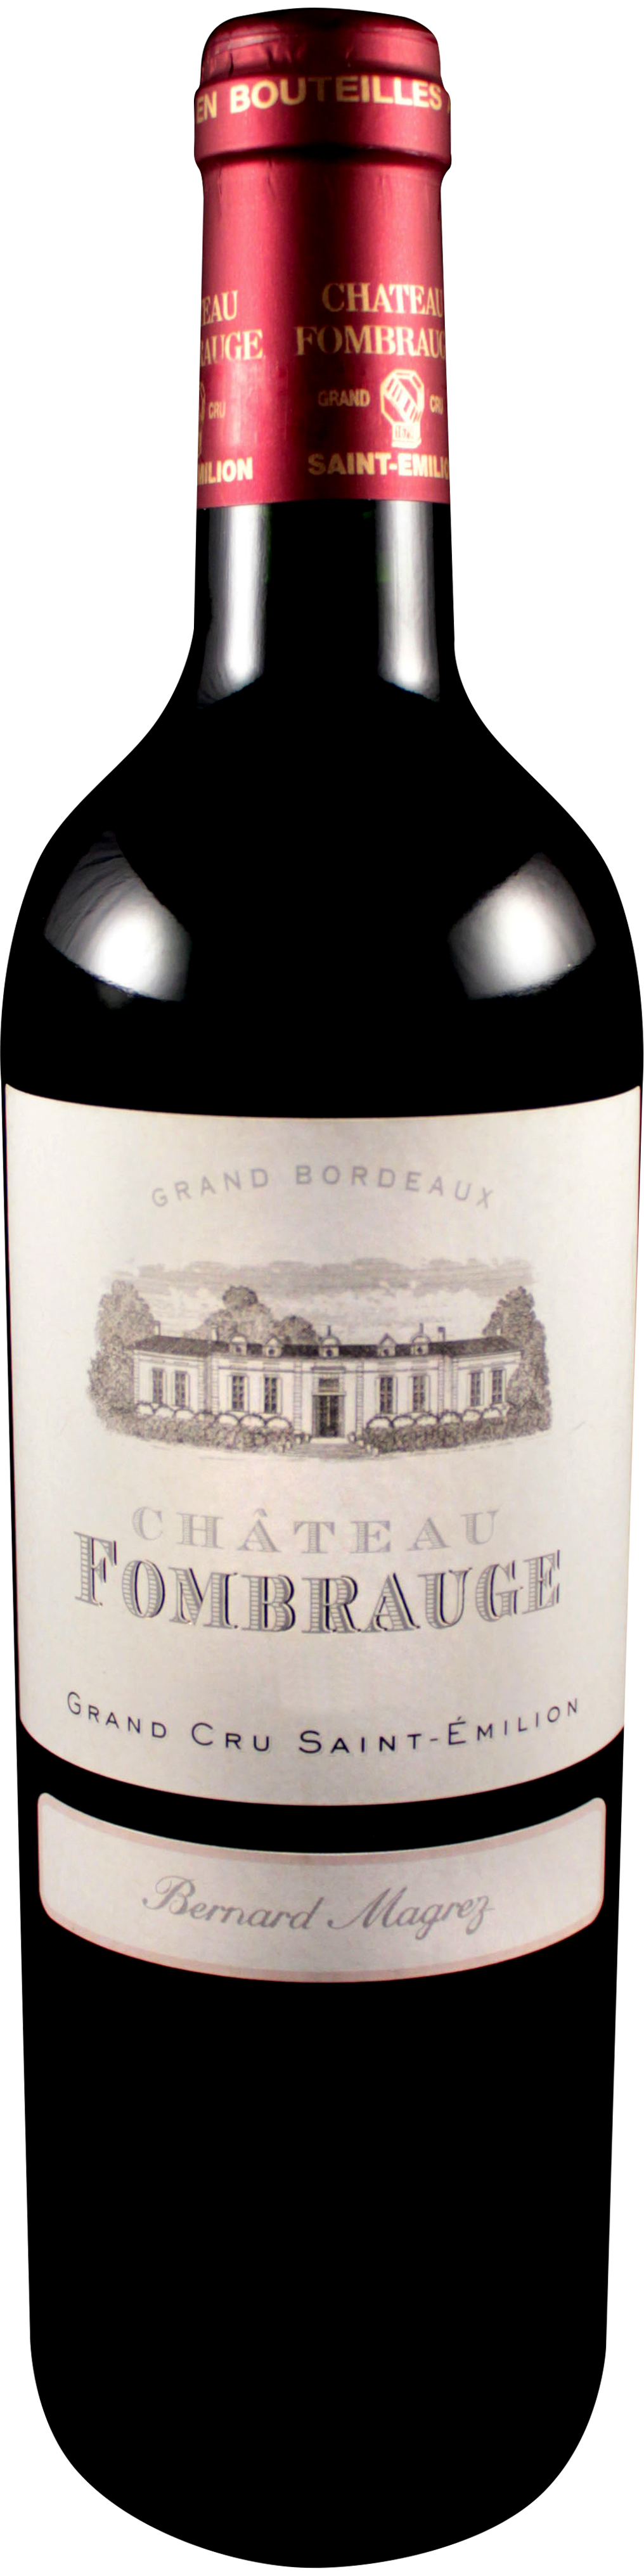 Image of product Château Fombrauge, St Emilion Grand Cru